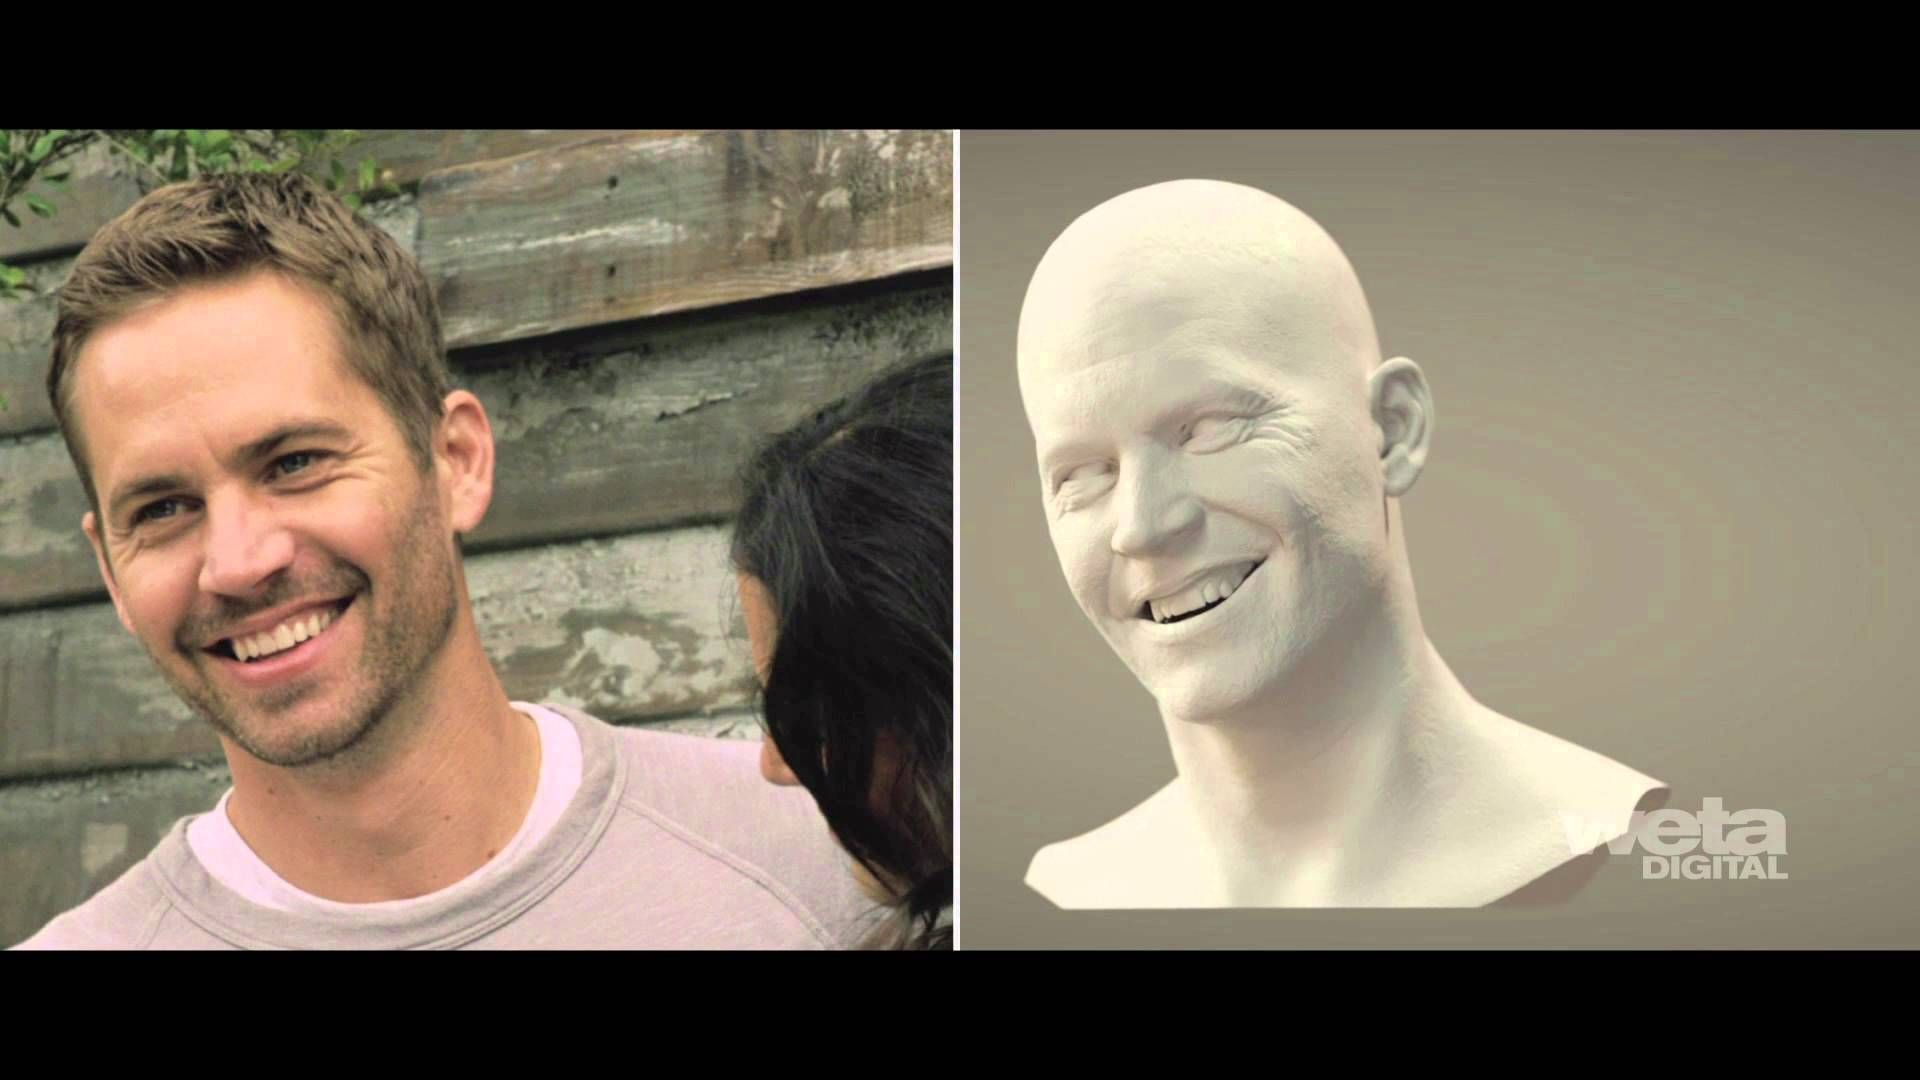 How Weta Digital allowed Paul Walker's legacy to live on in Furious 7. Absolutely astonishing visual effects work.